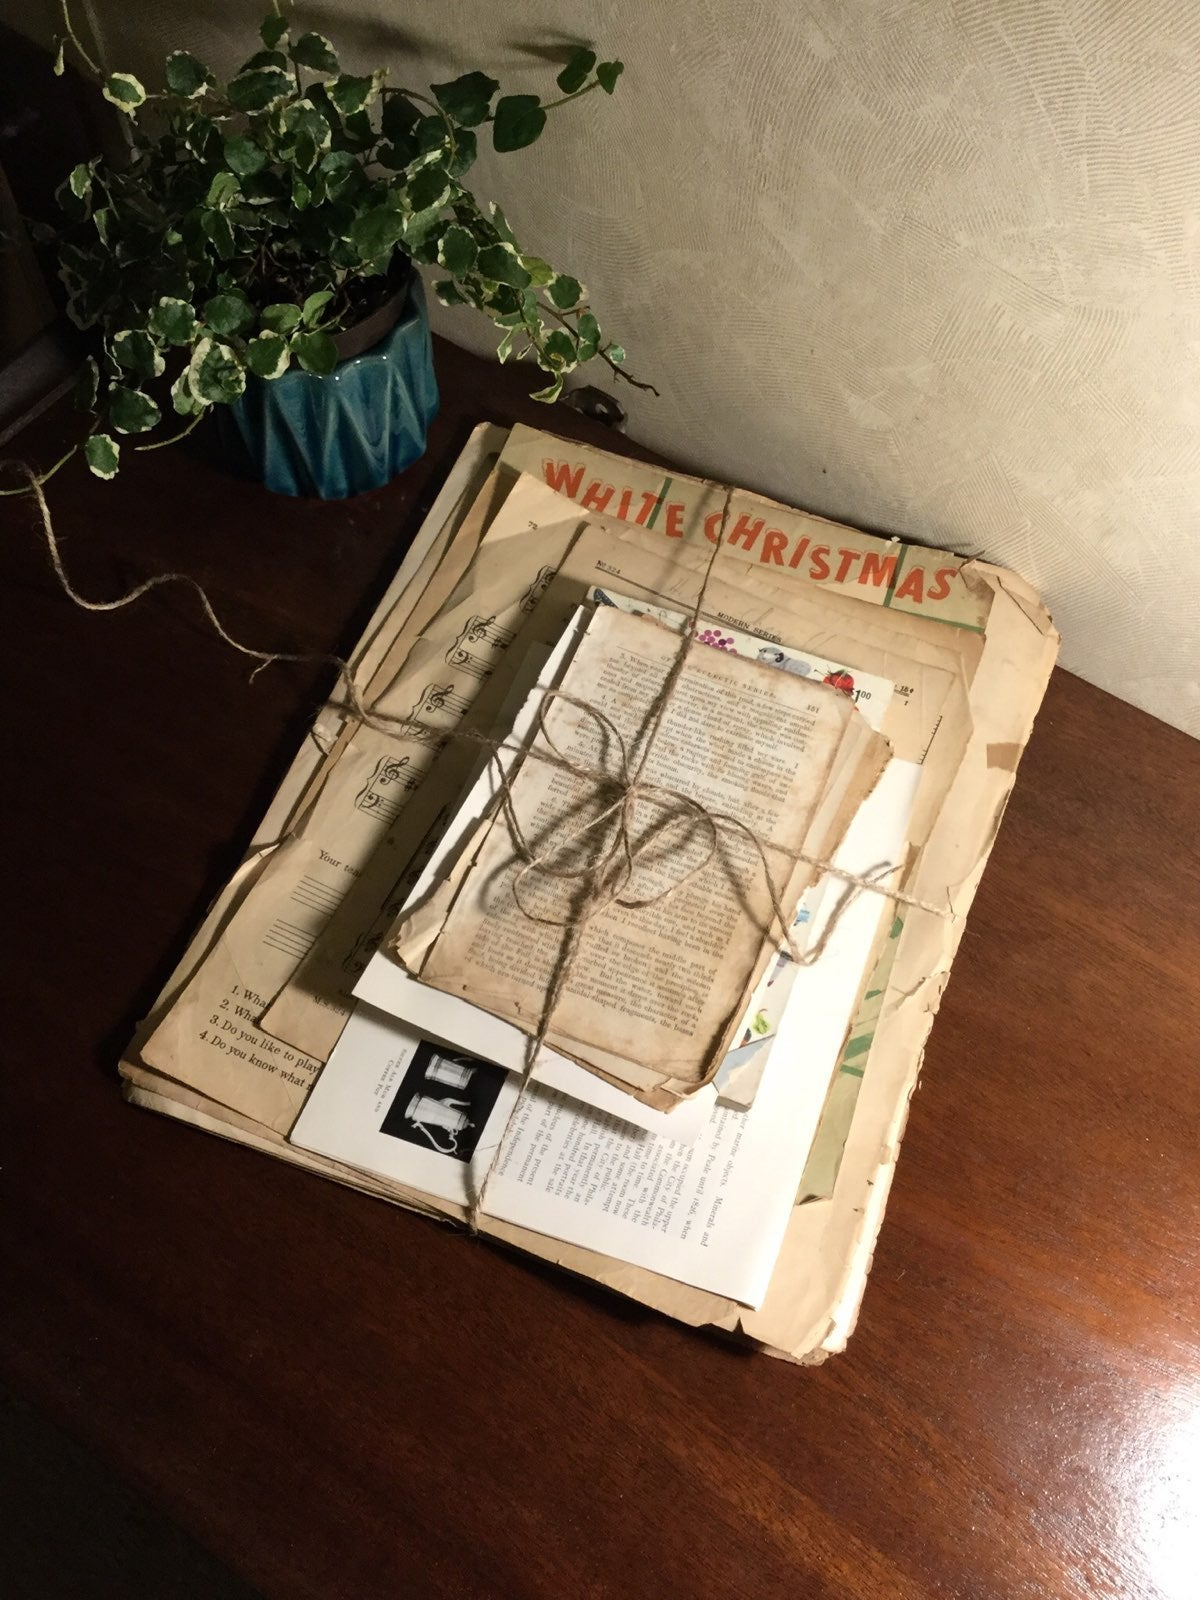 60 pages of Ephemera, Vintage paper, an